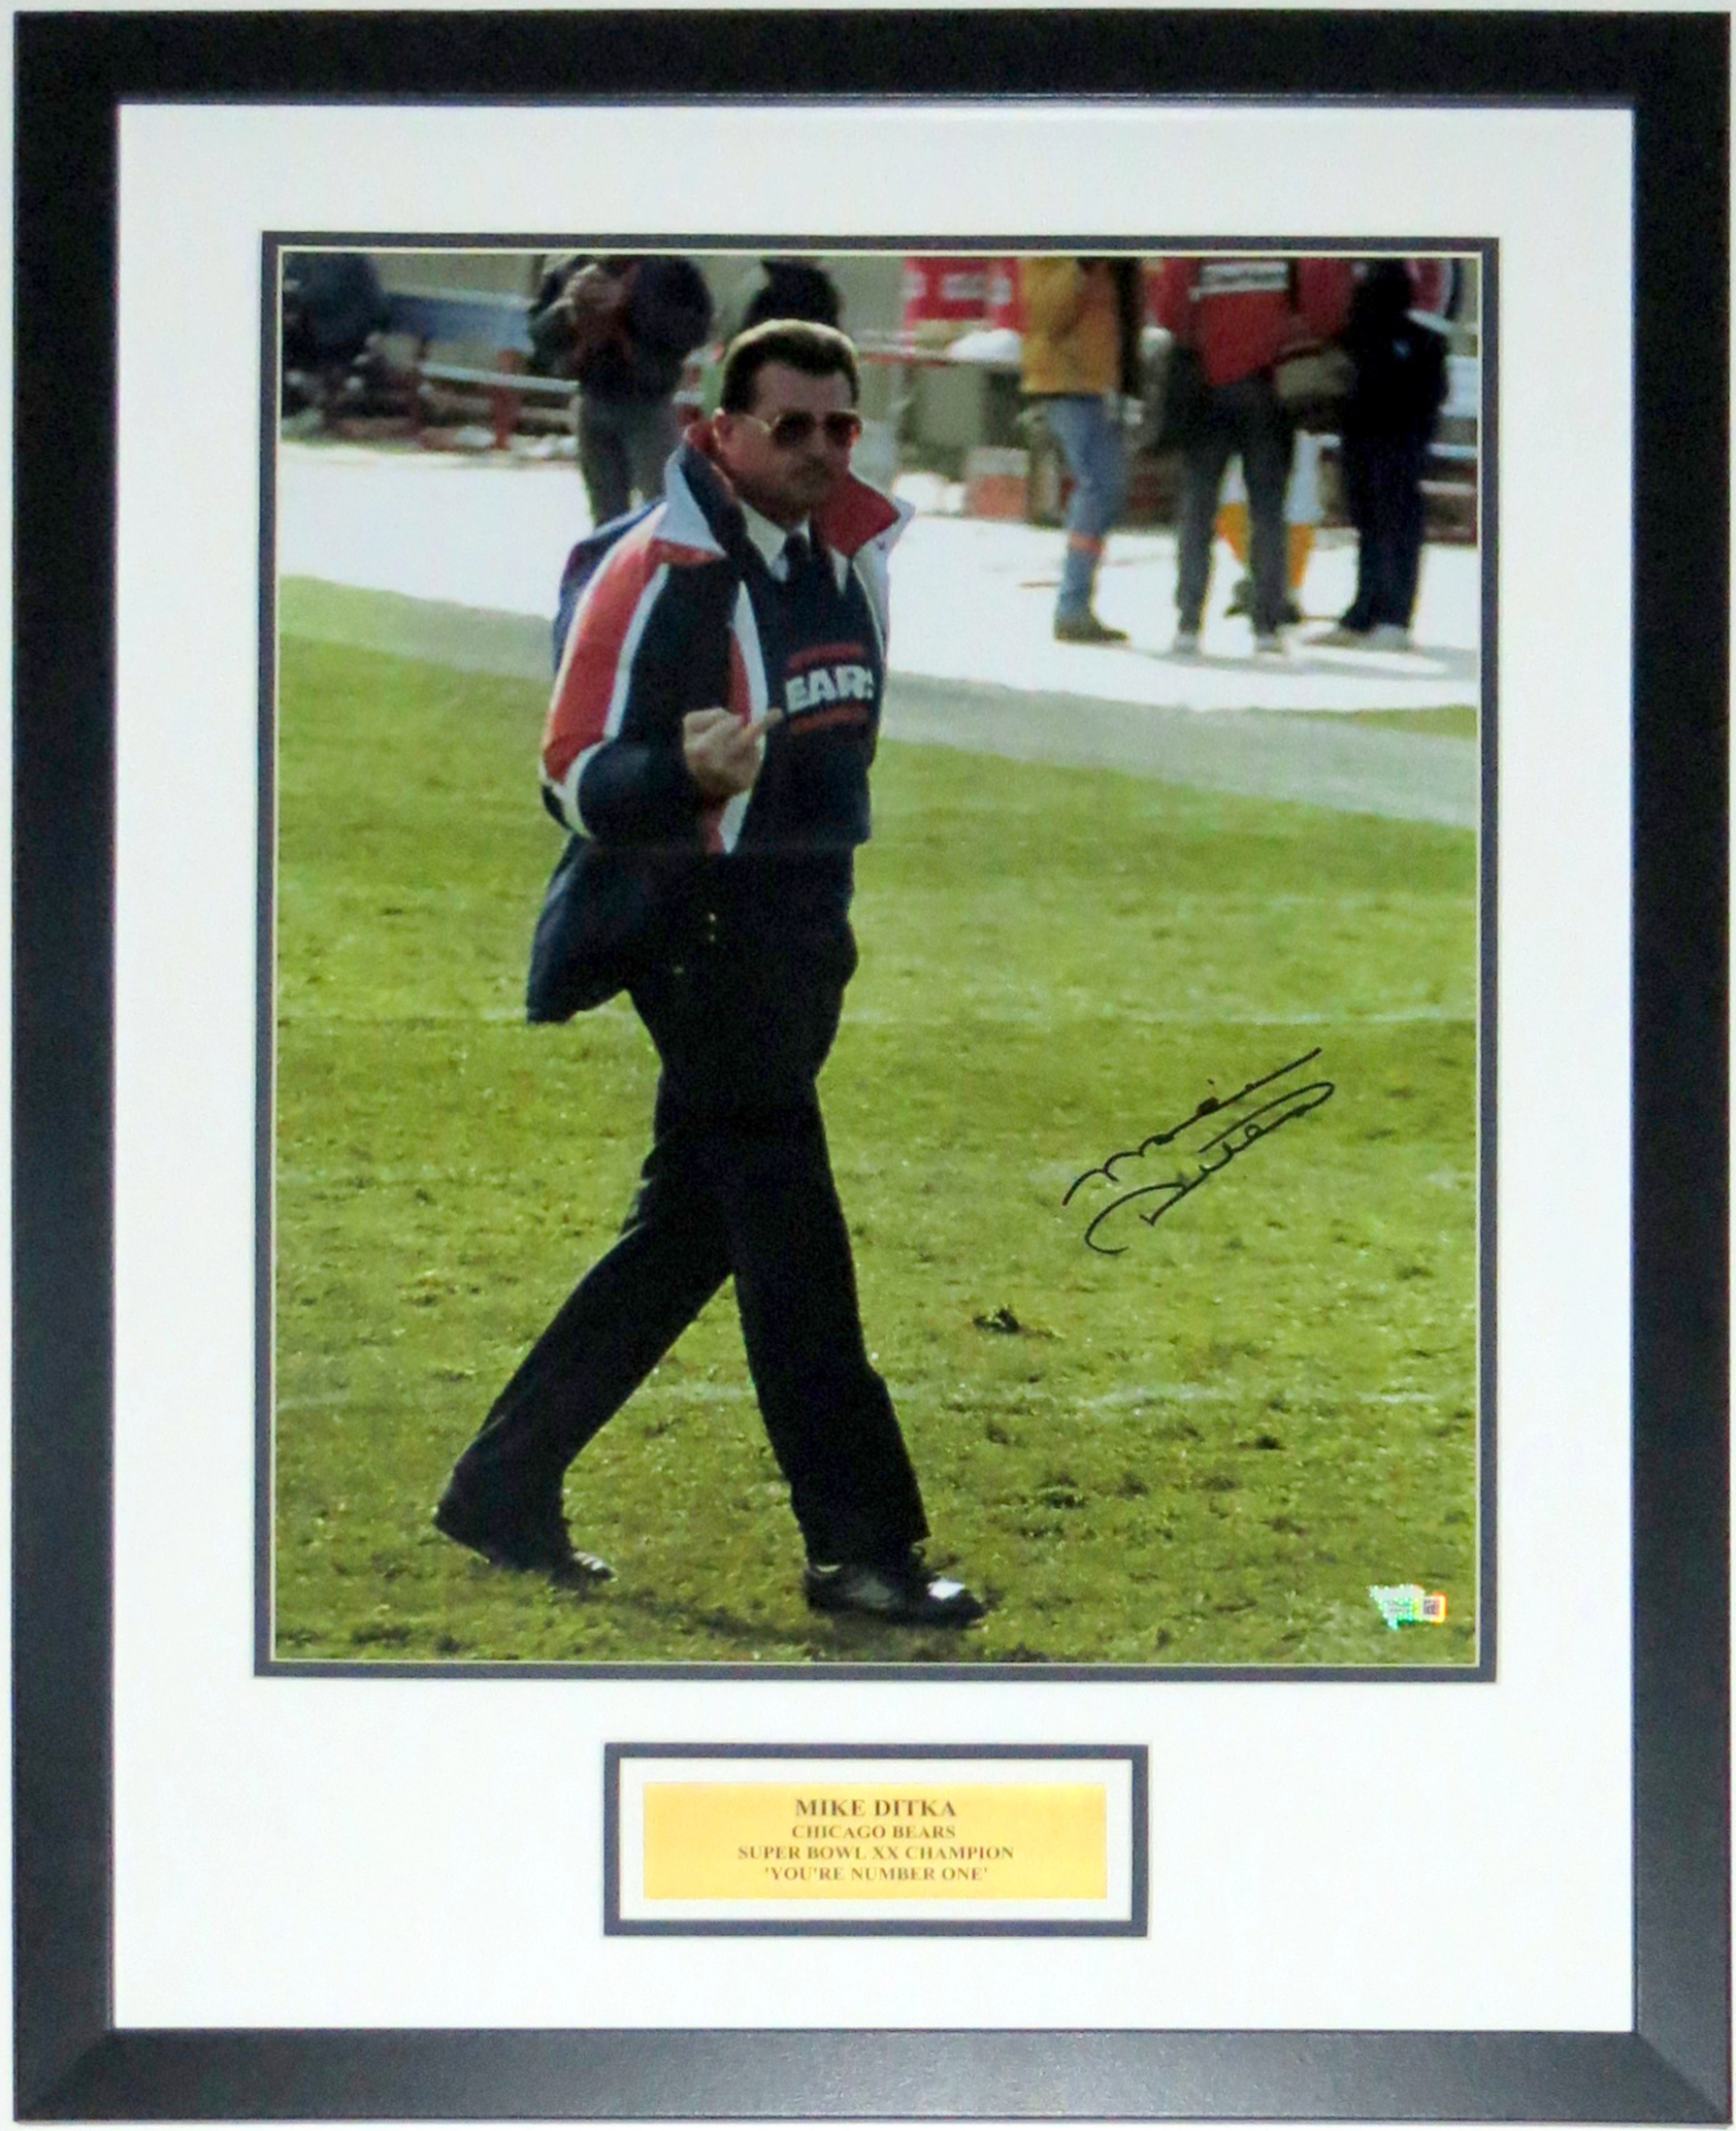 Mike Ditka Signed Chicago Bears Middle Finger 16x20 Photo - Fanatics COA Authenticated - Professionally Framed & You're Number One Plate